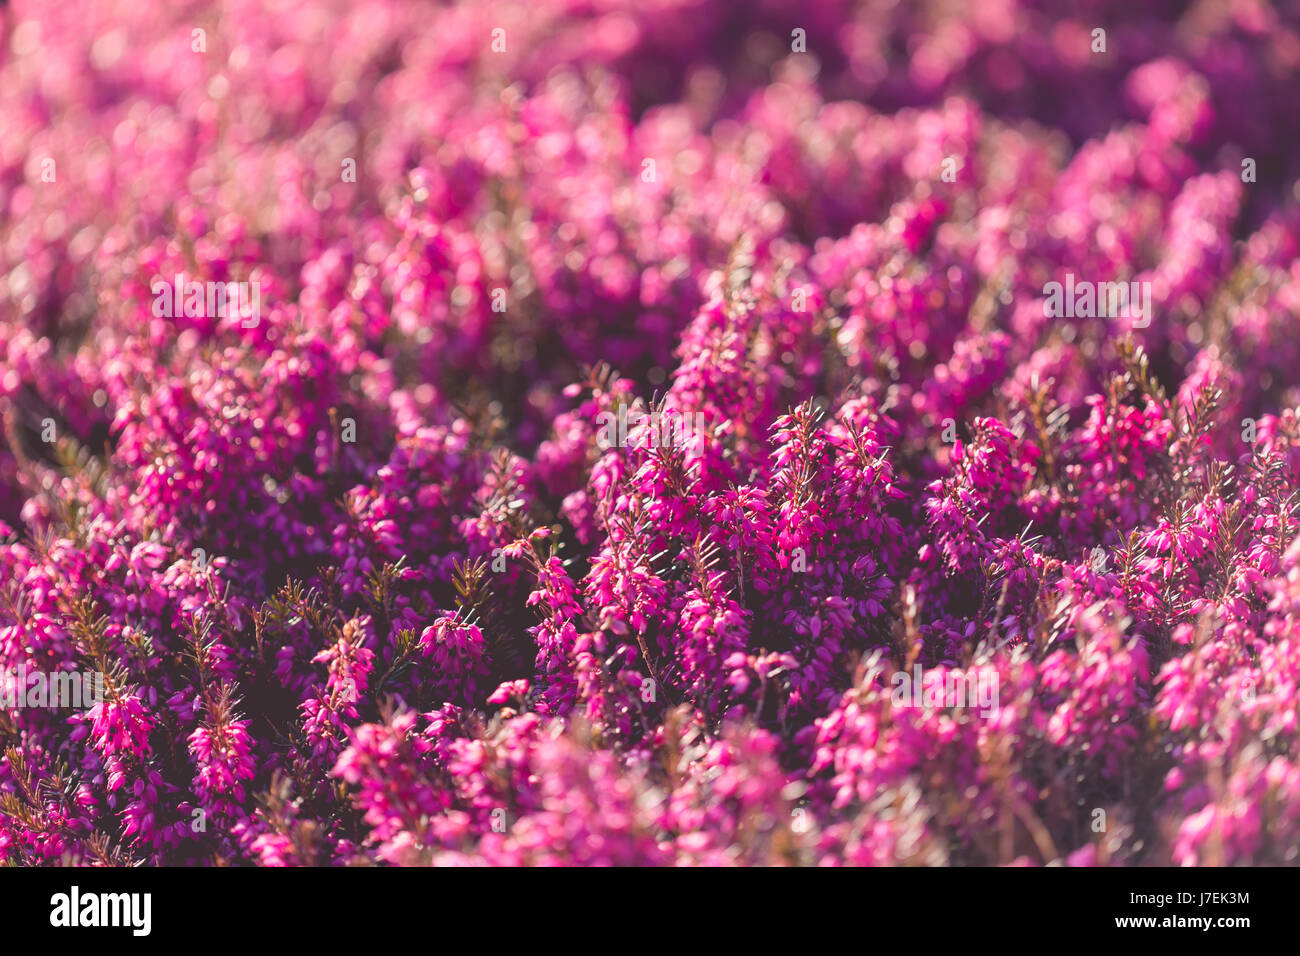 Heather Growing In Spring Stock Photos Heather Growing In Spring